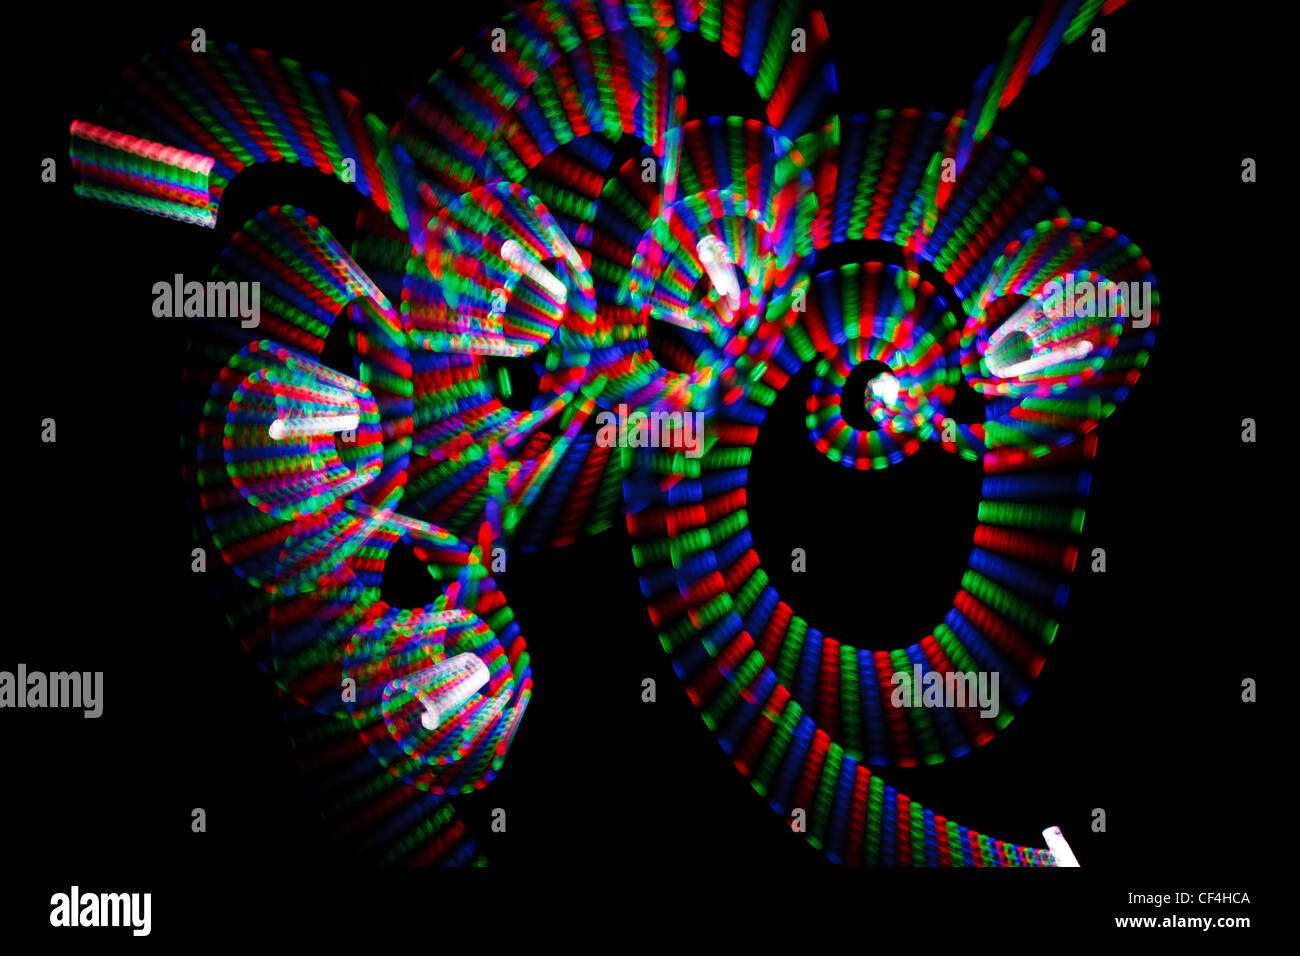 Abstract multicolored freezelight in form of spirals on black background. - Stock Image